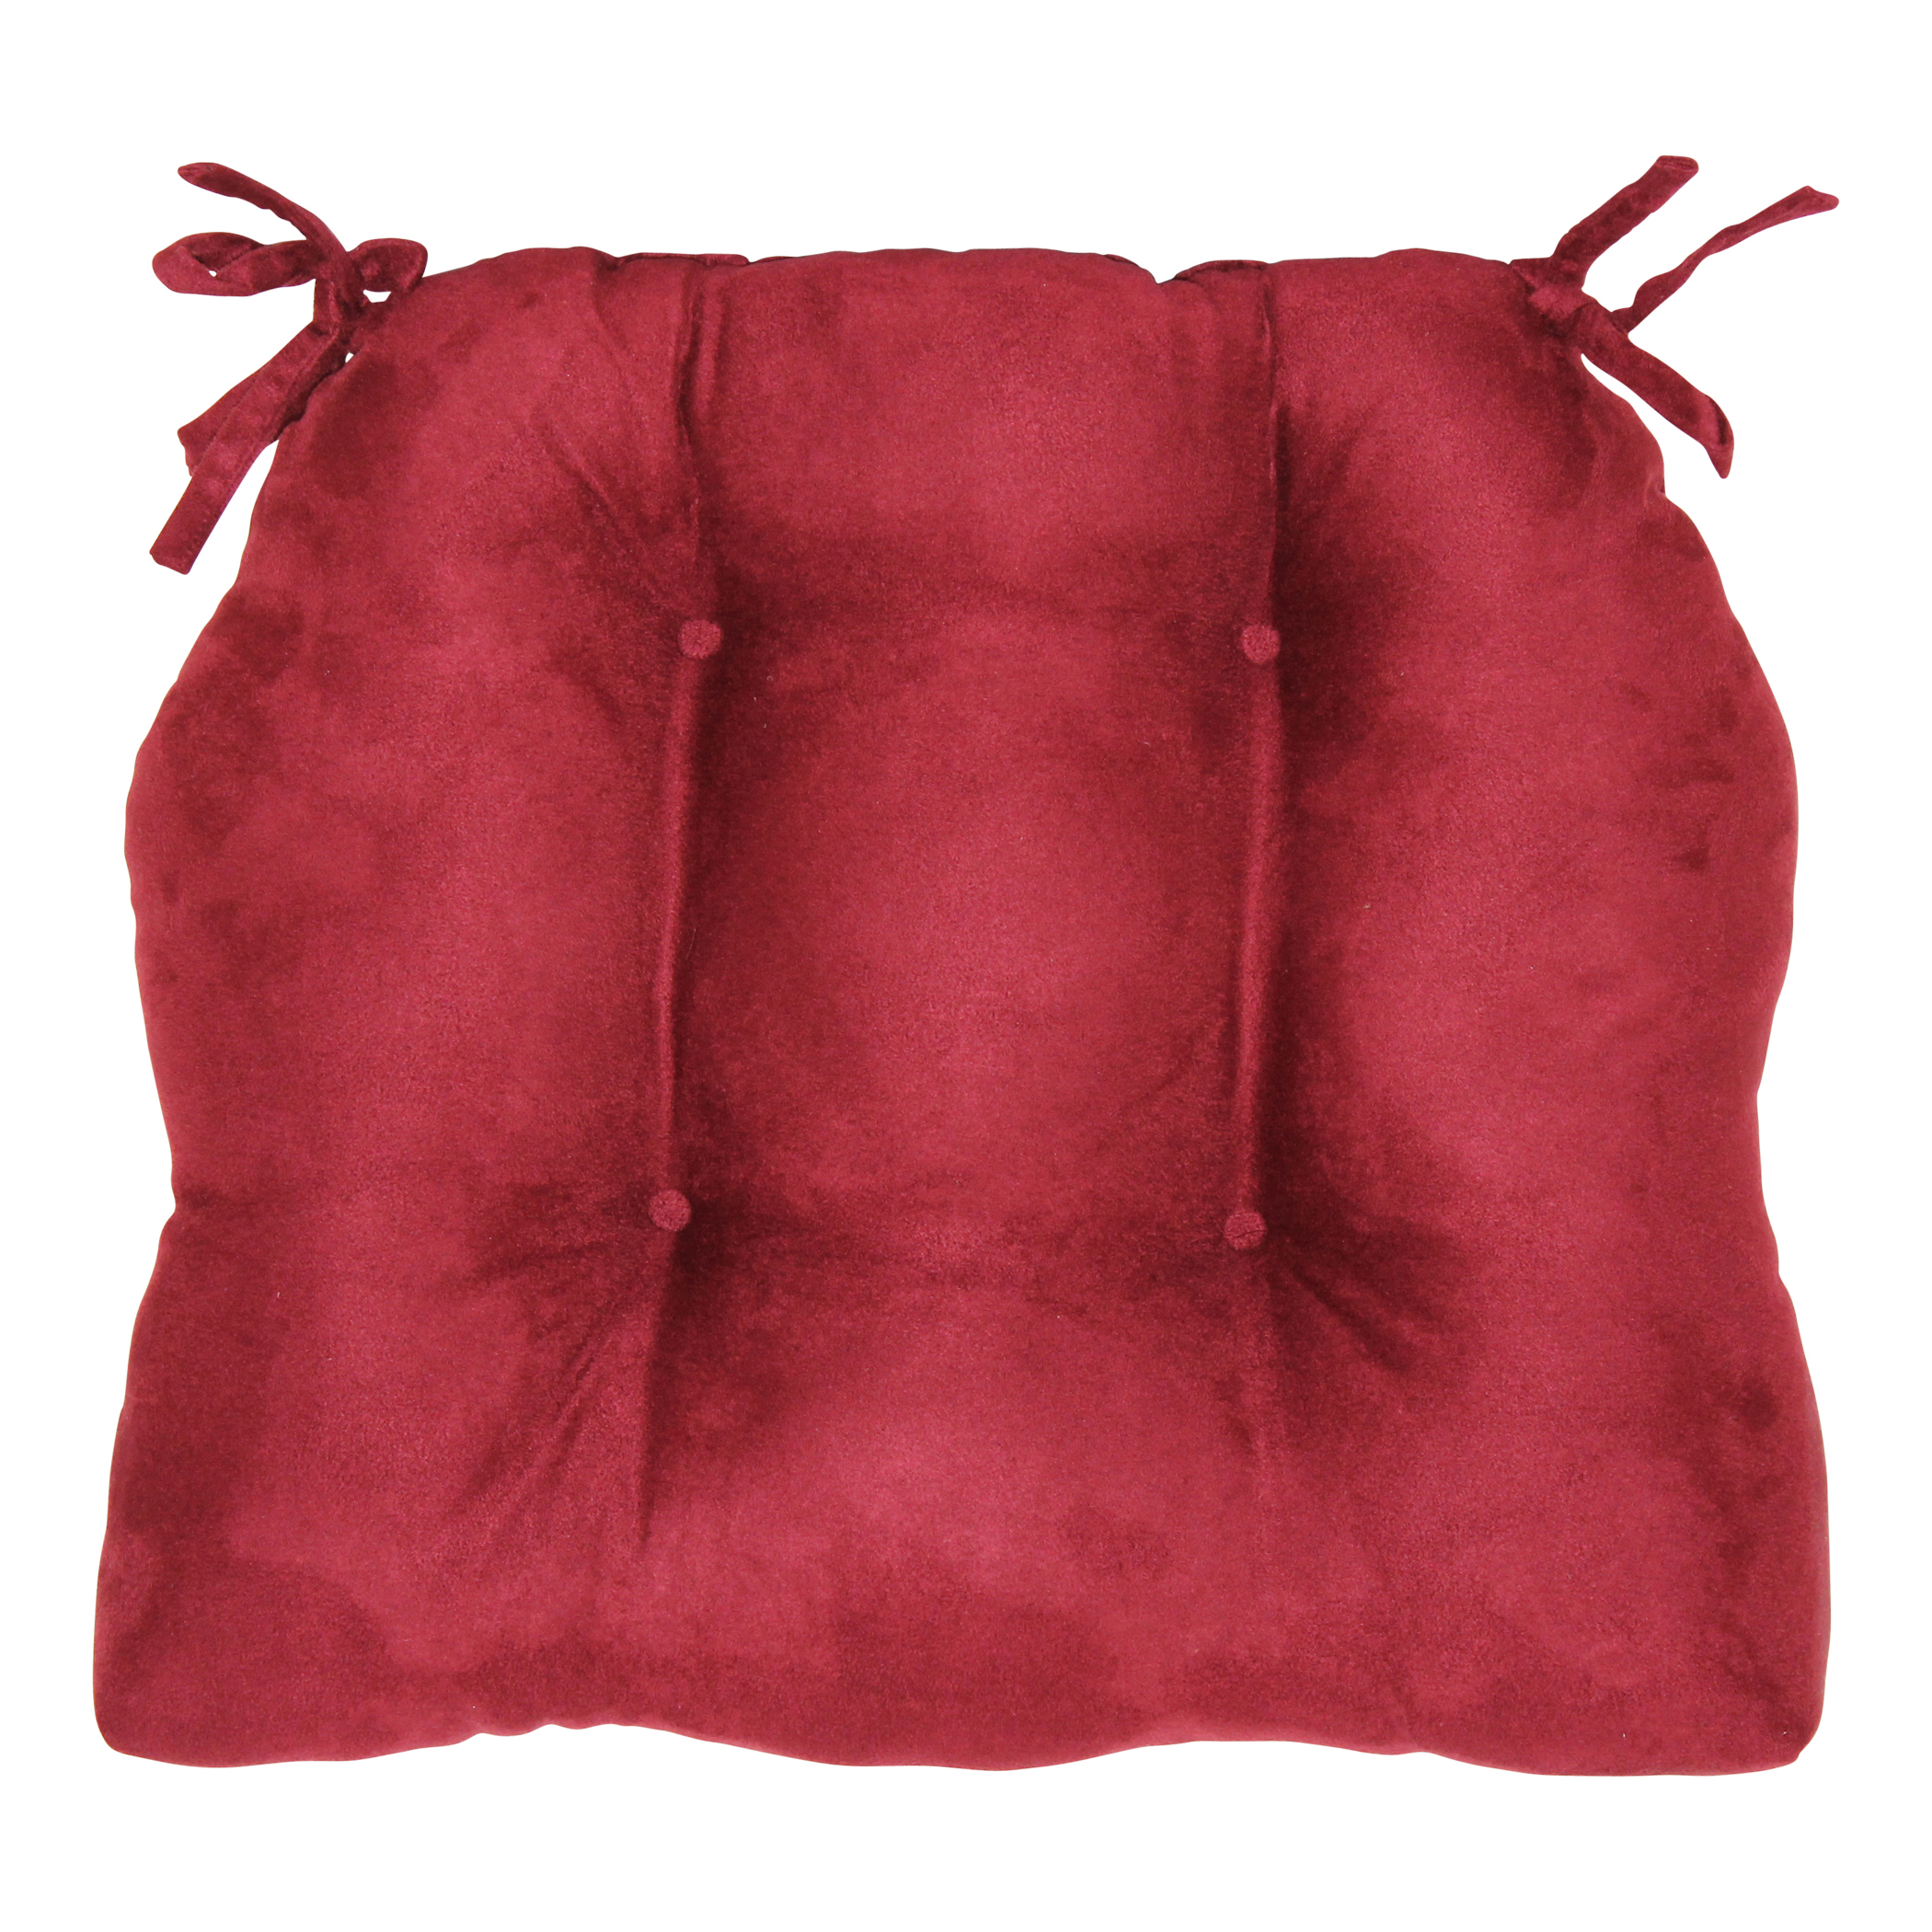 """Brentwood Originals Faux Suede Chair Pad, 16""""L x 14.5"""" W, Mulberry"""